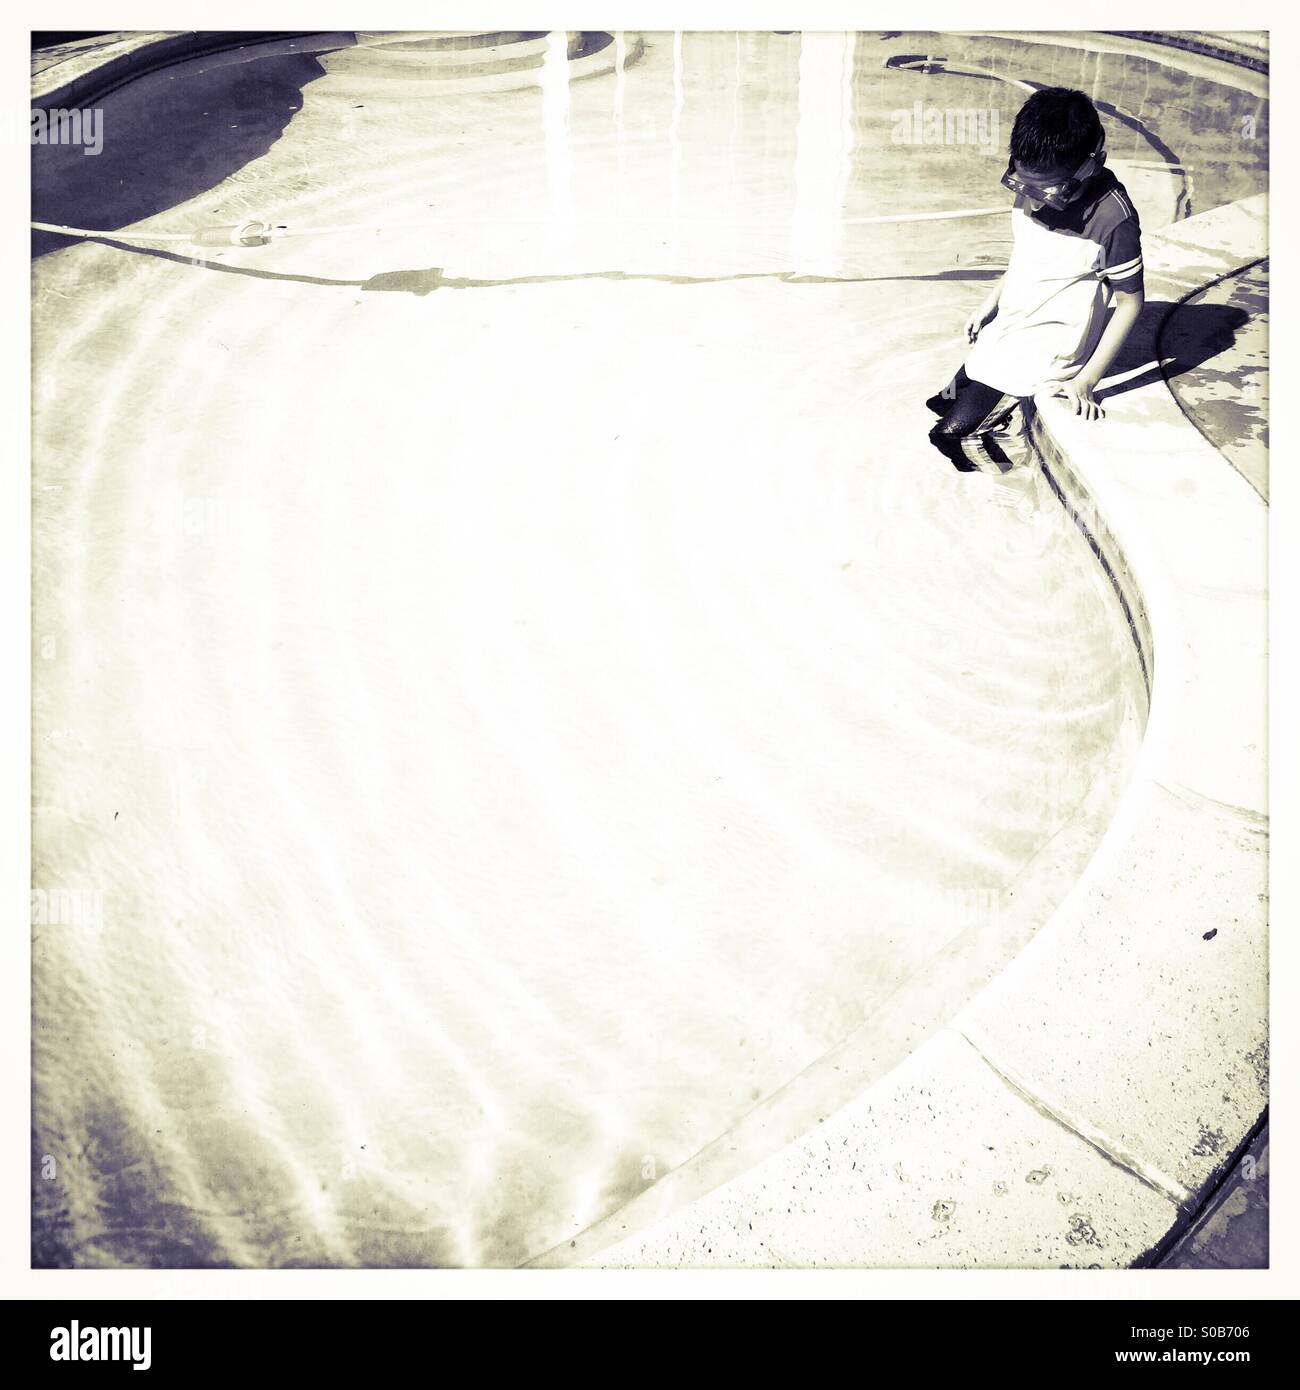 A seven year old boy wearing clothes and a swimming mask sits on the edge of a swimming pool. Stock Photo